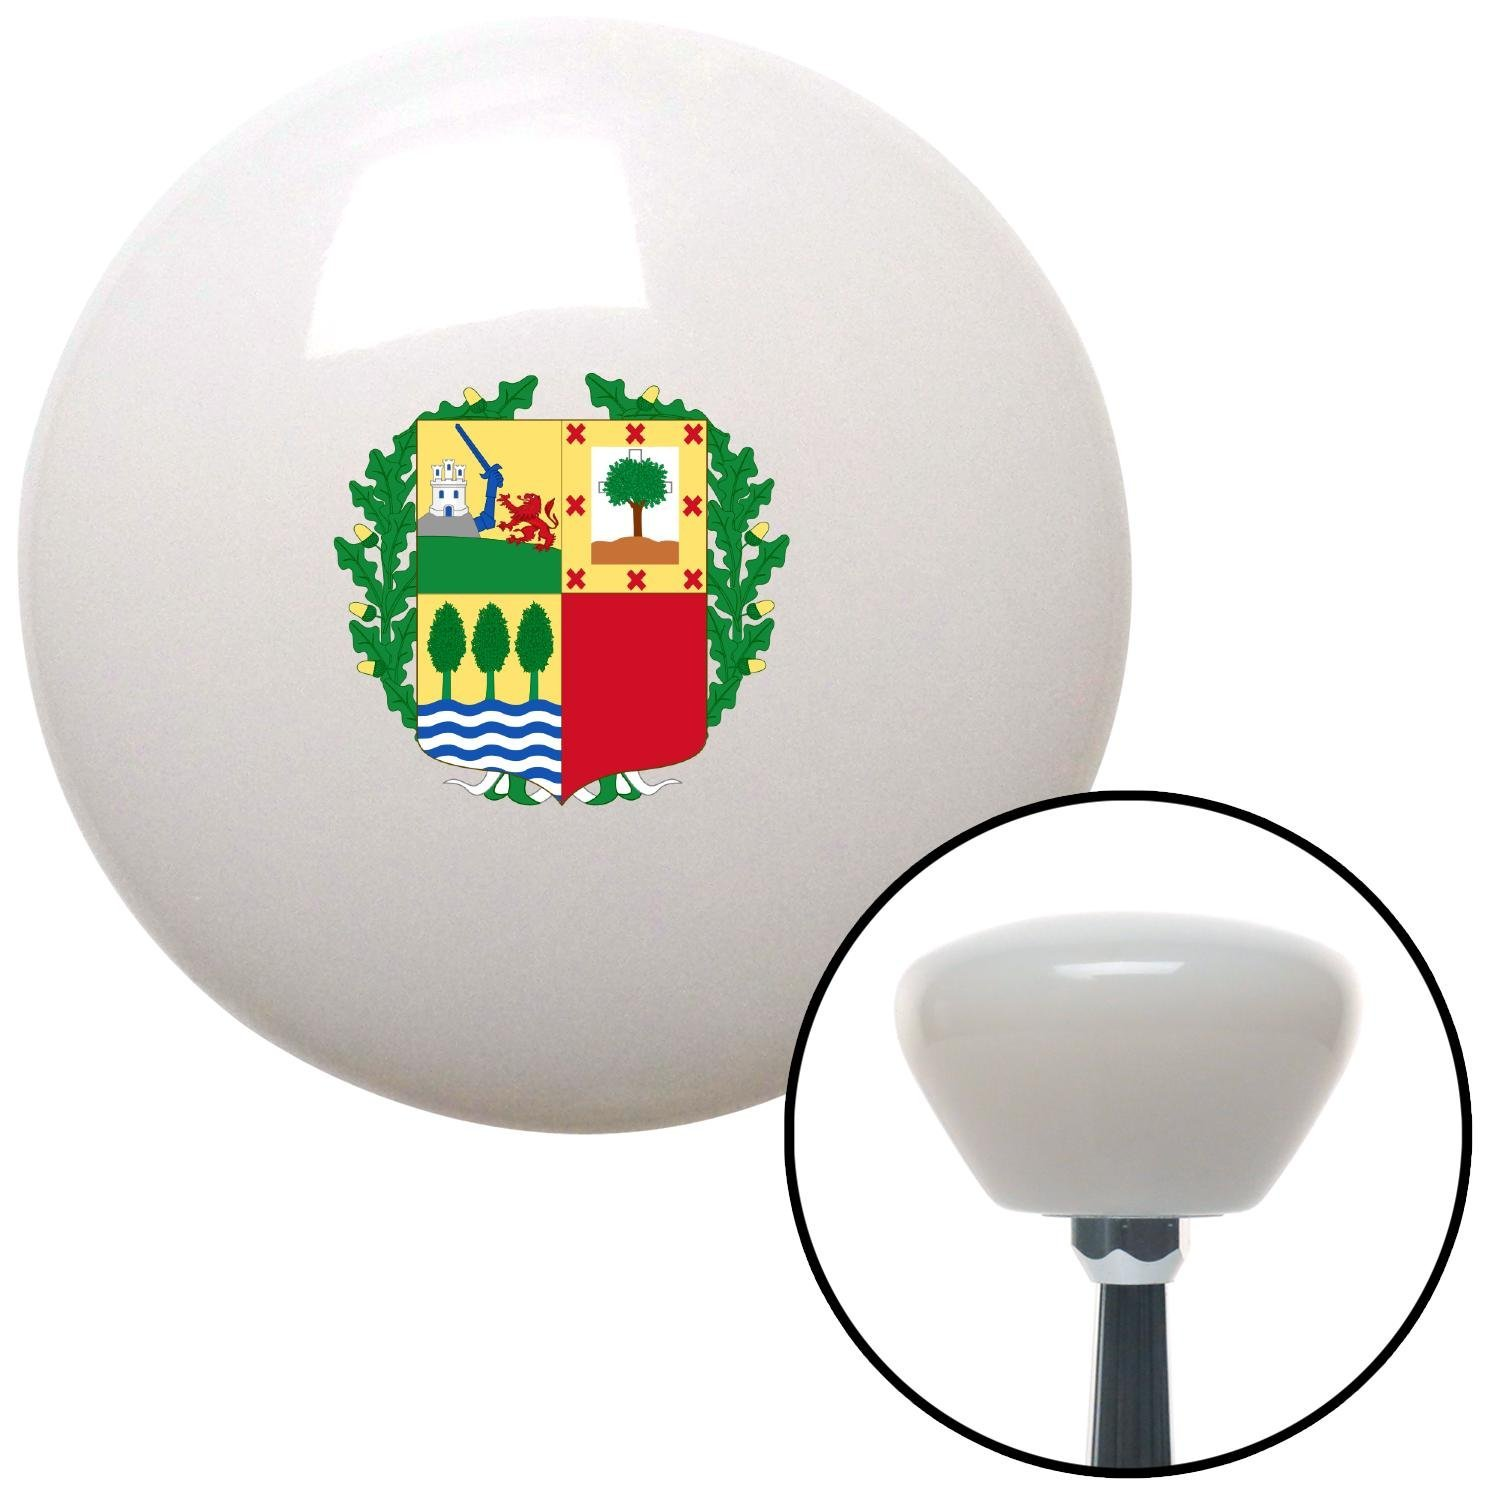 American Shifter 153304 White Retro Shift Knob with M16 x 1.5 Insert Basque Crest